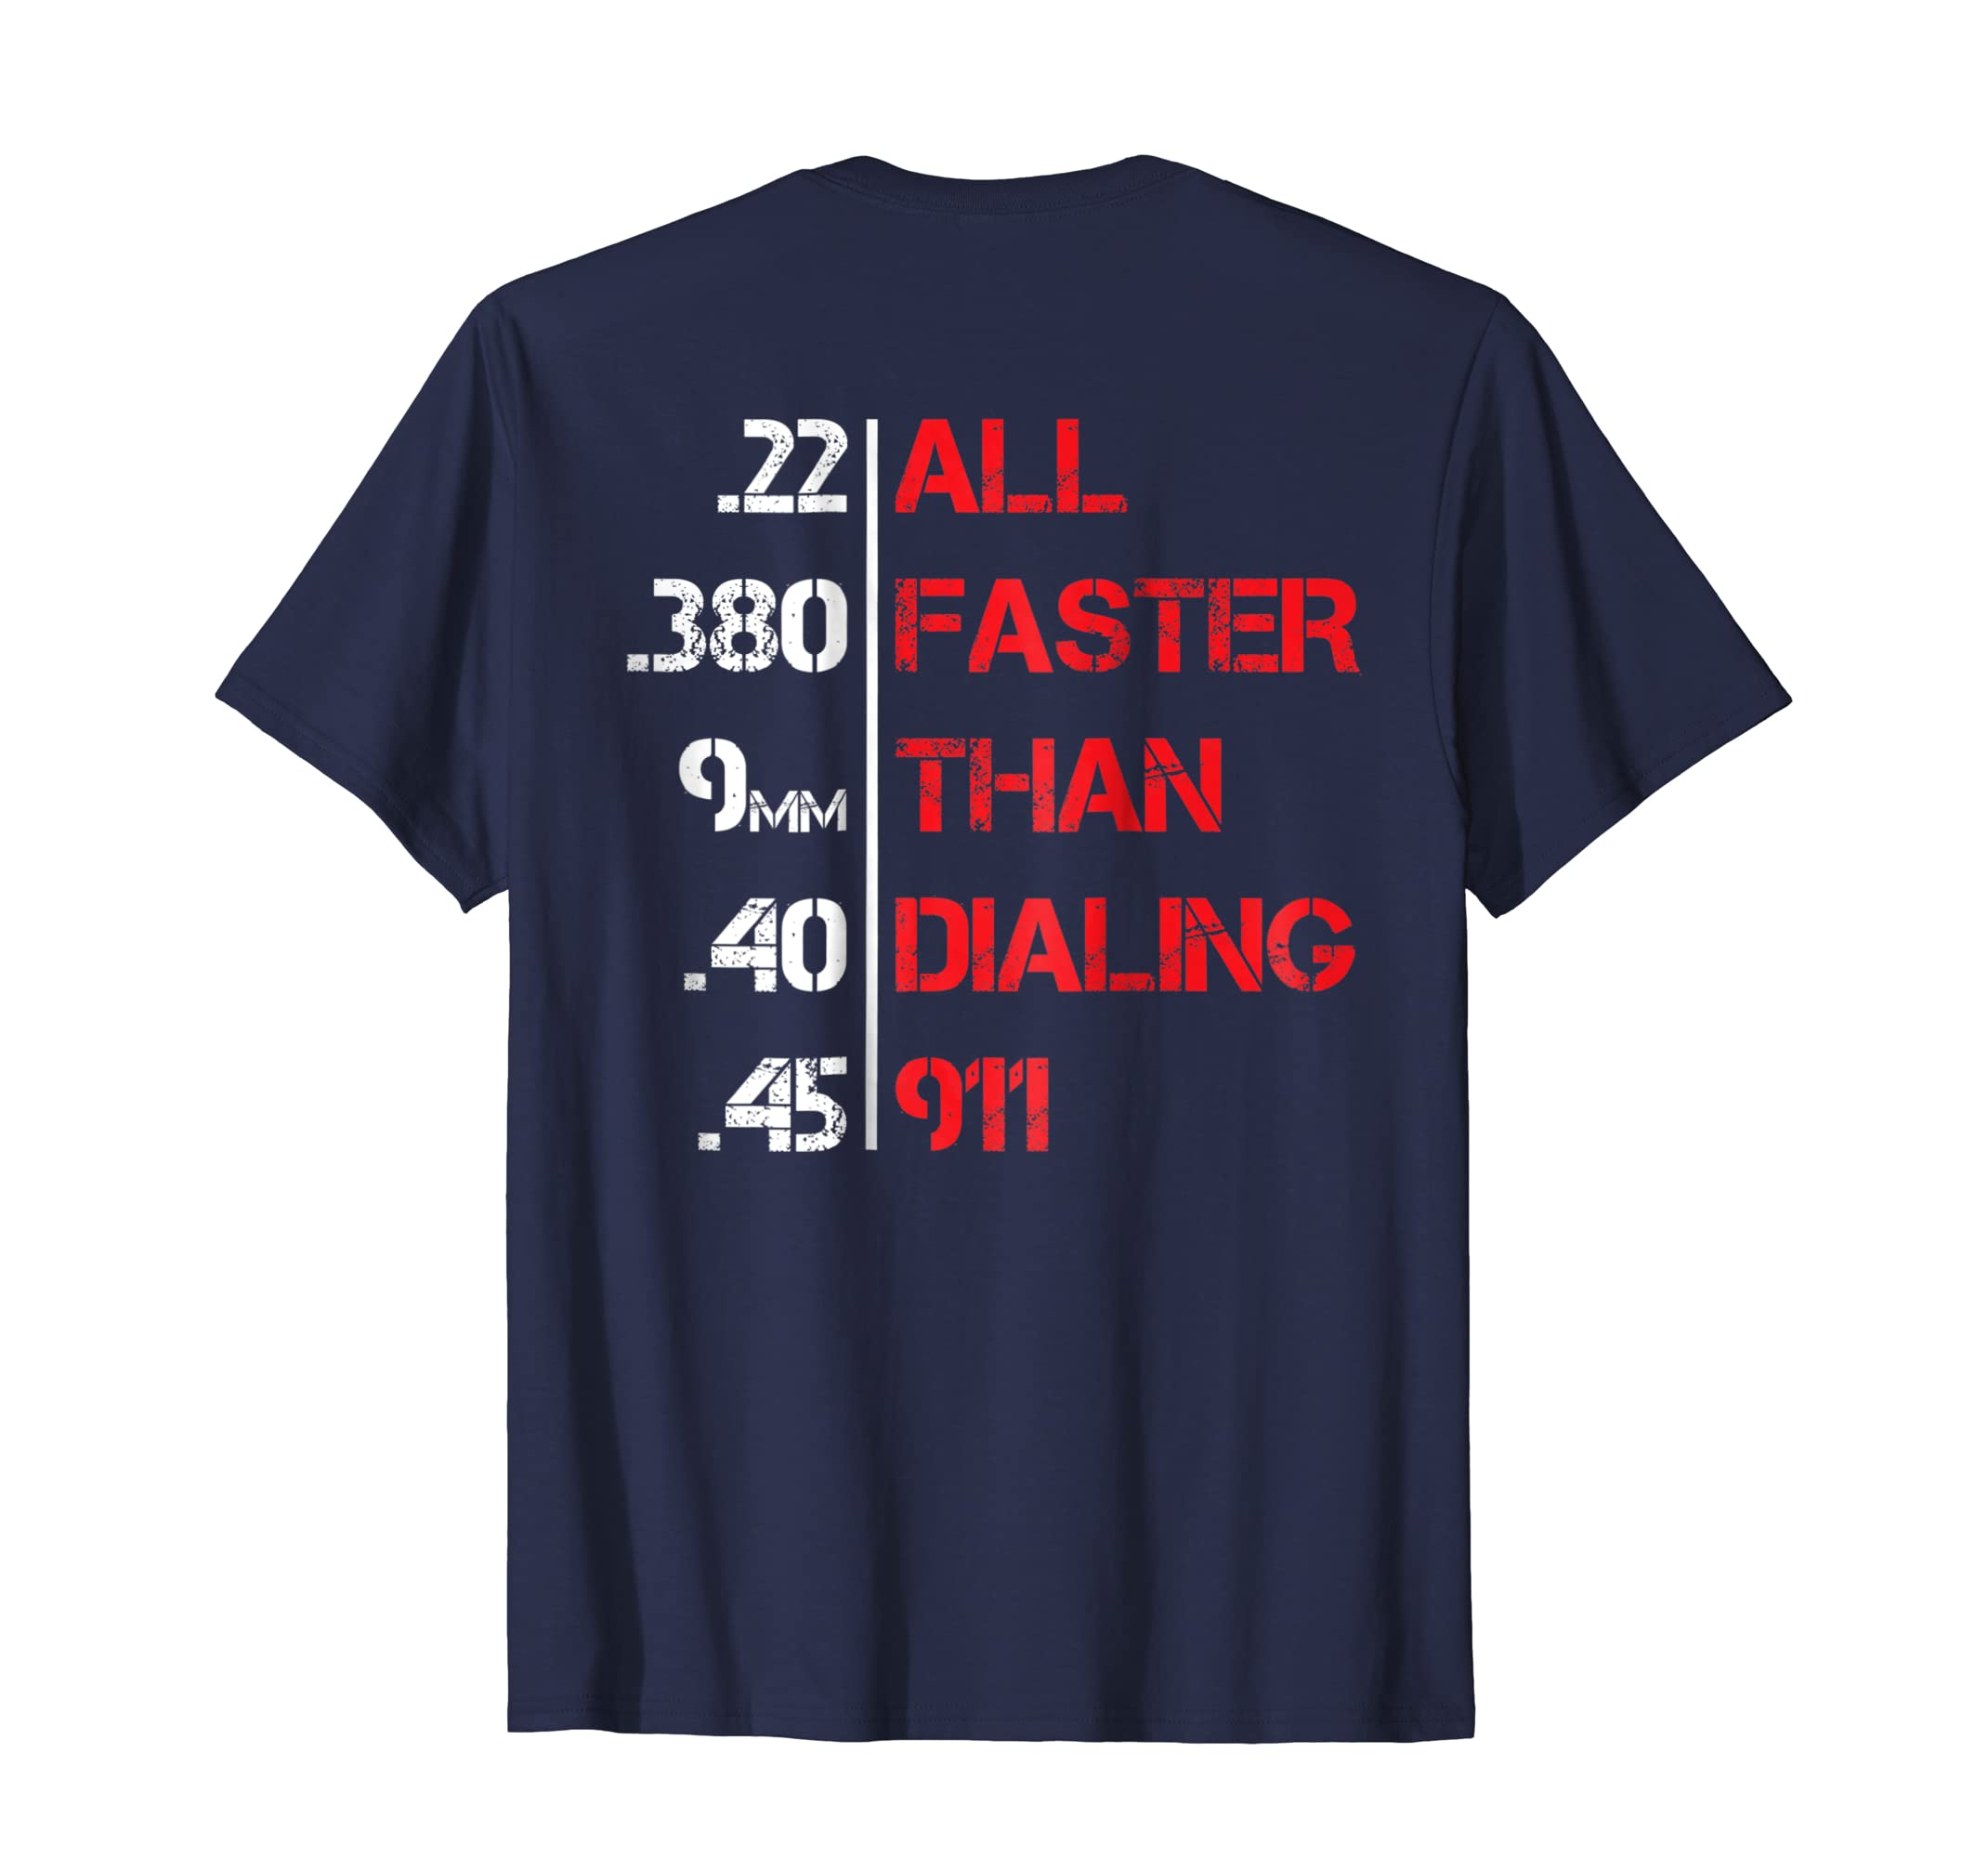 All Faster Than Dialing 911 Funny Gun Love Saying Cool Shirt-azvn